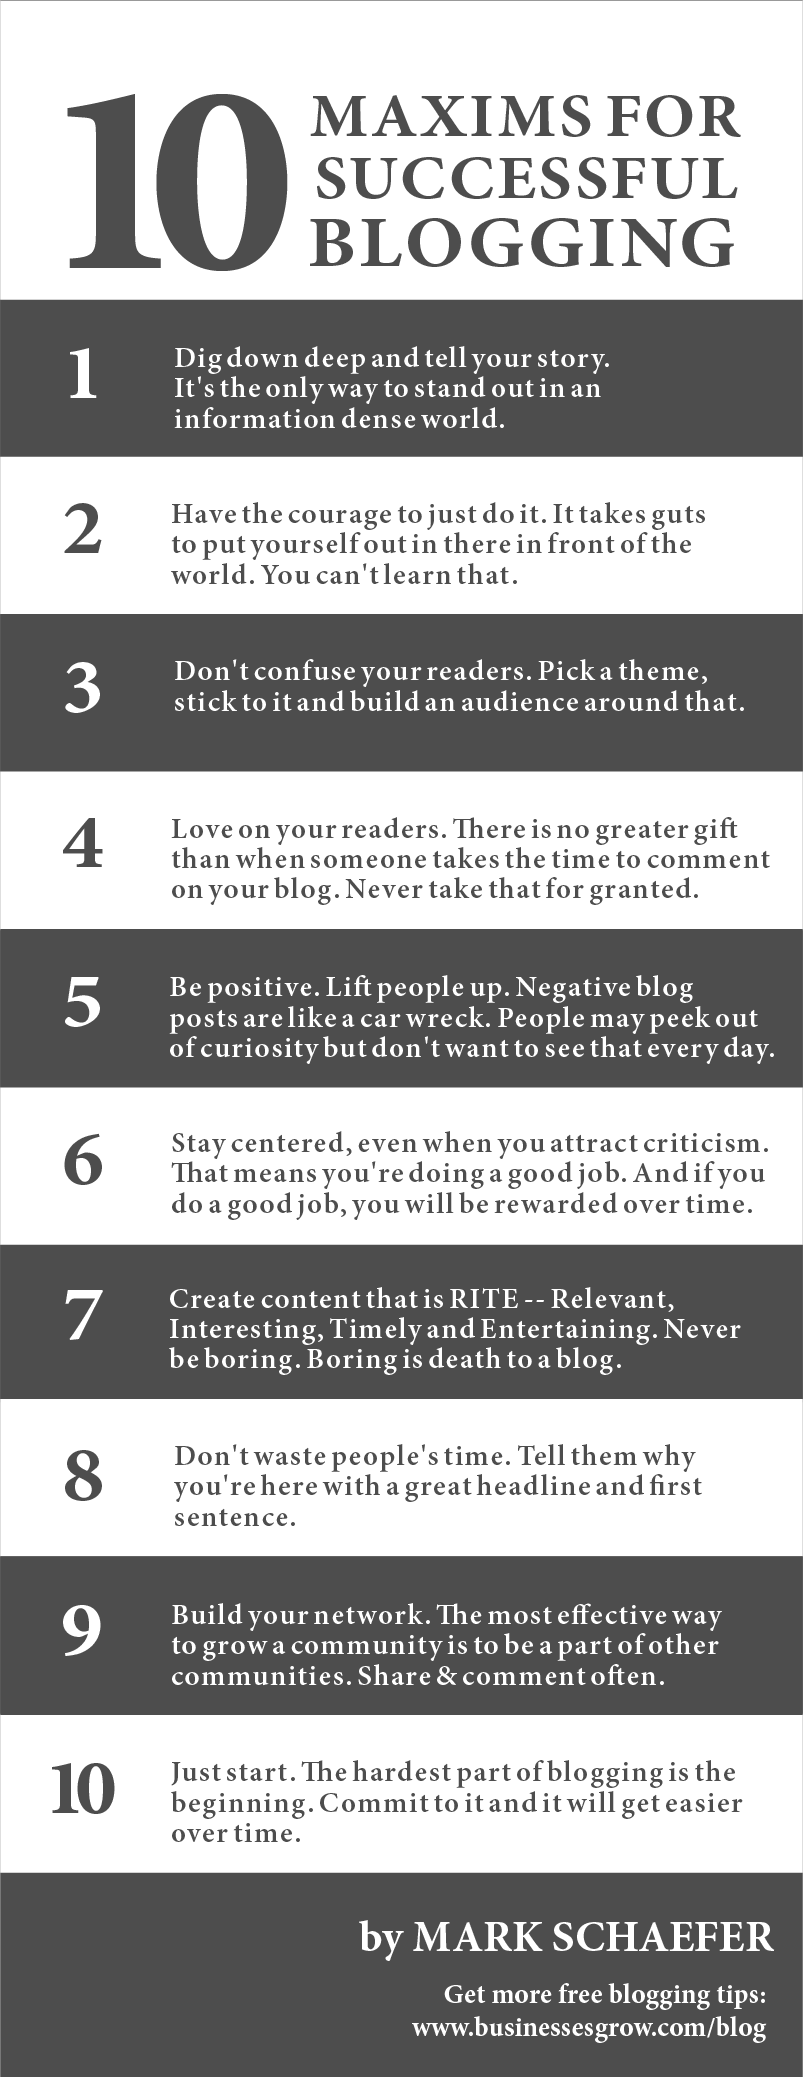 10-maxims-of-blogging